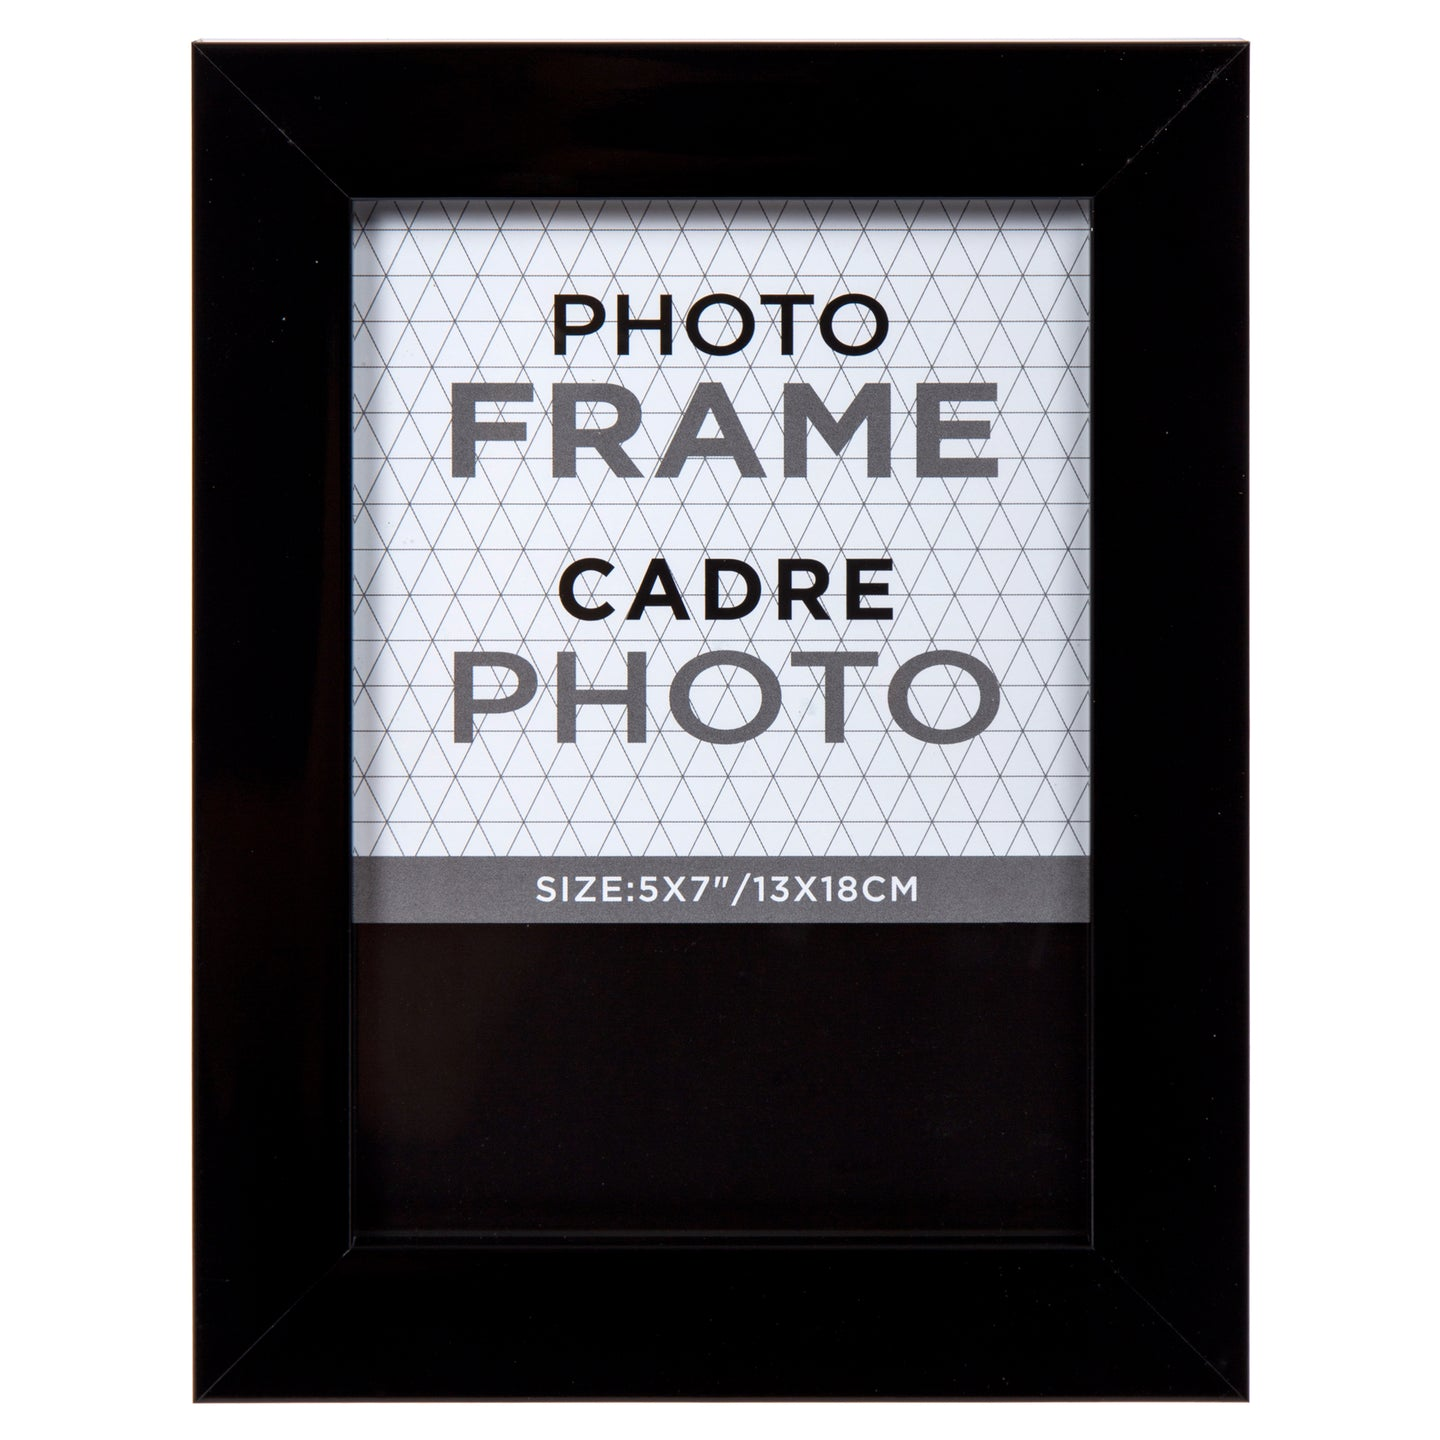 Gallery Photo Frame 5x7